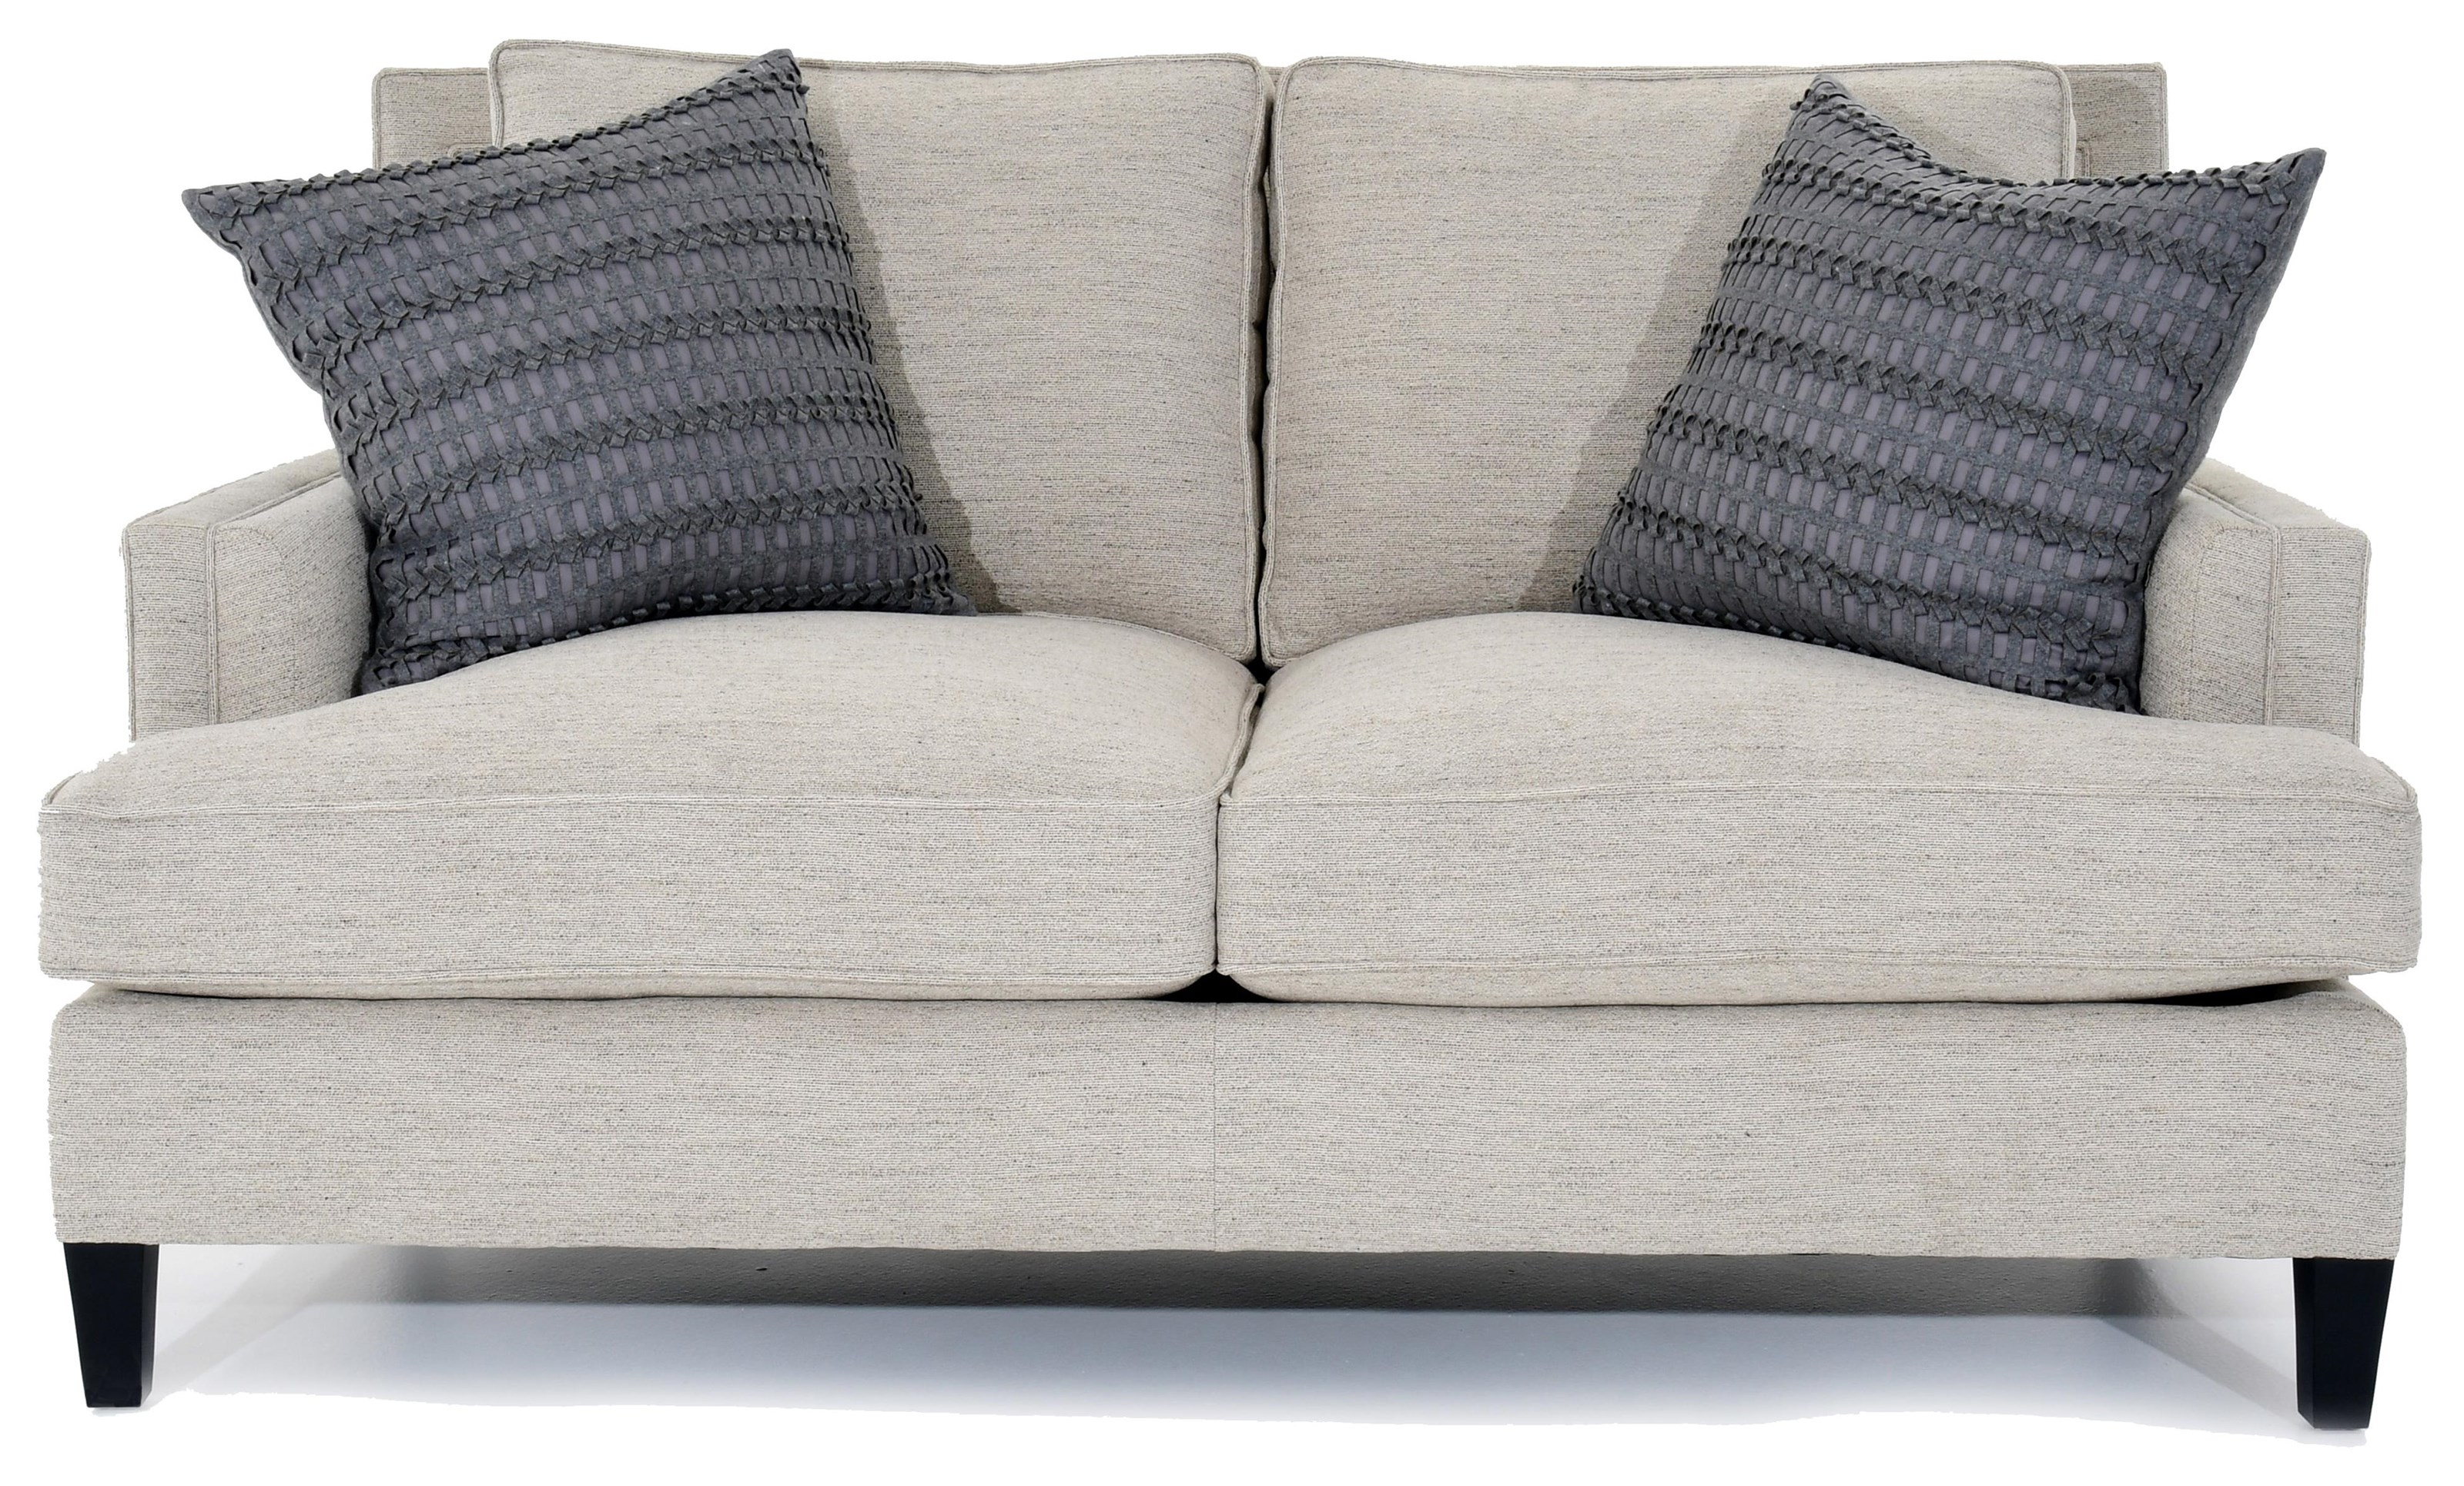 Bernhardt Addison Loveseat - Item Number: B1485 1011-002